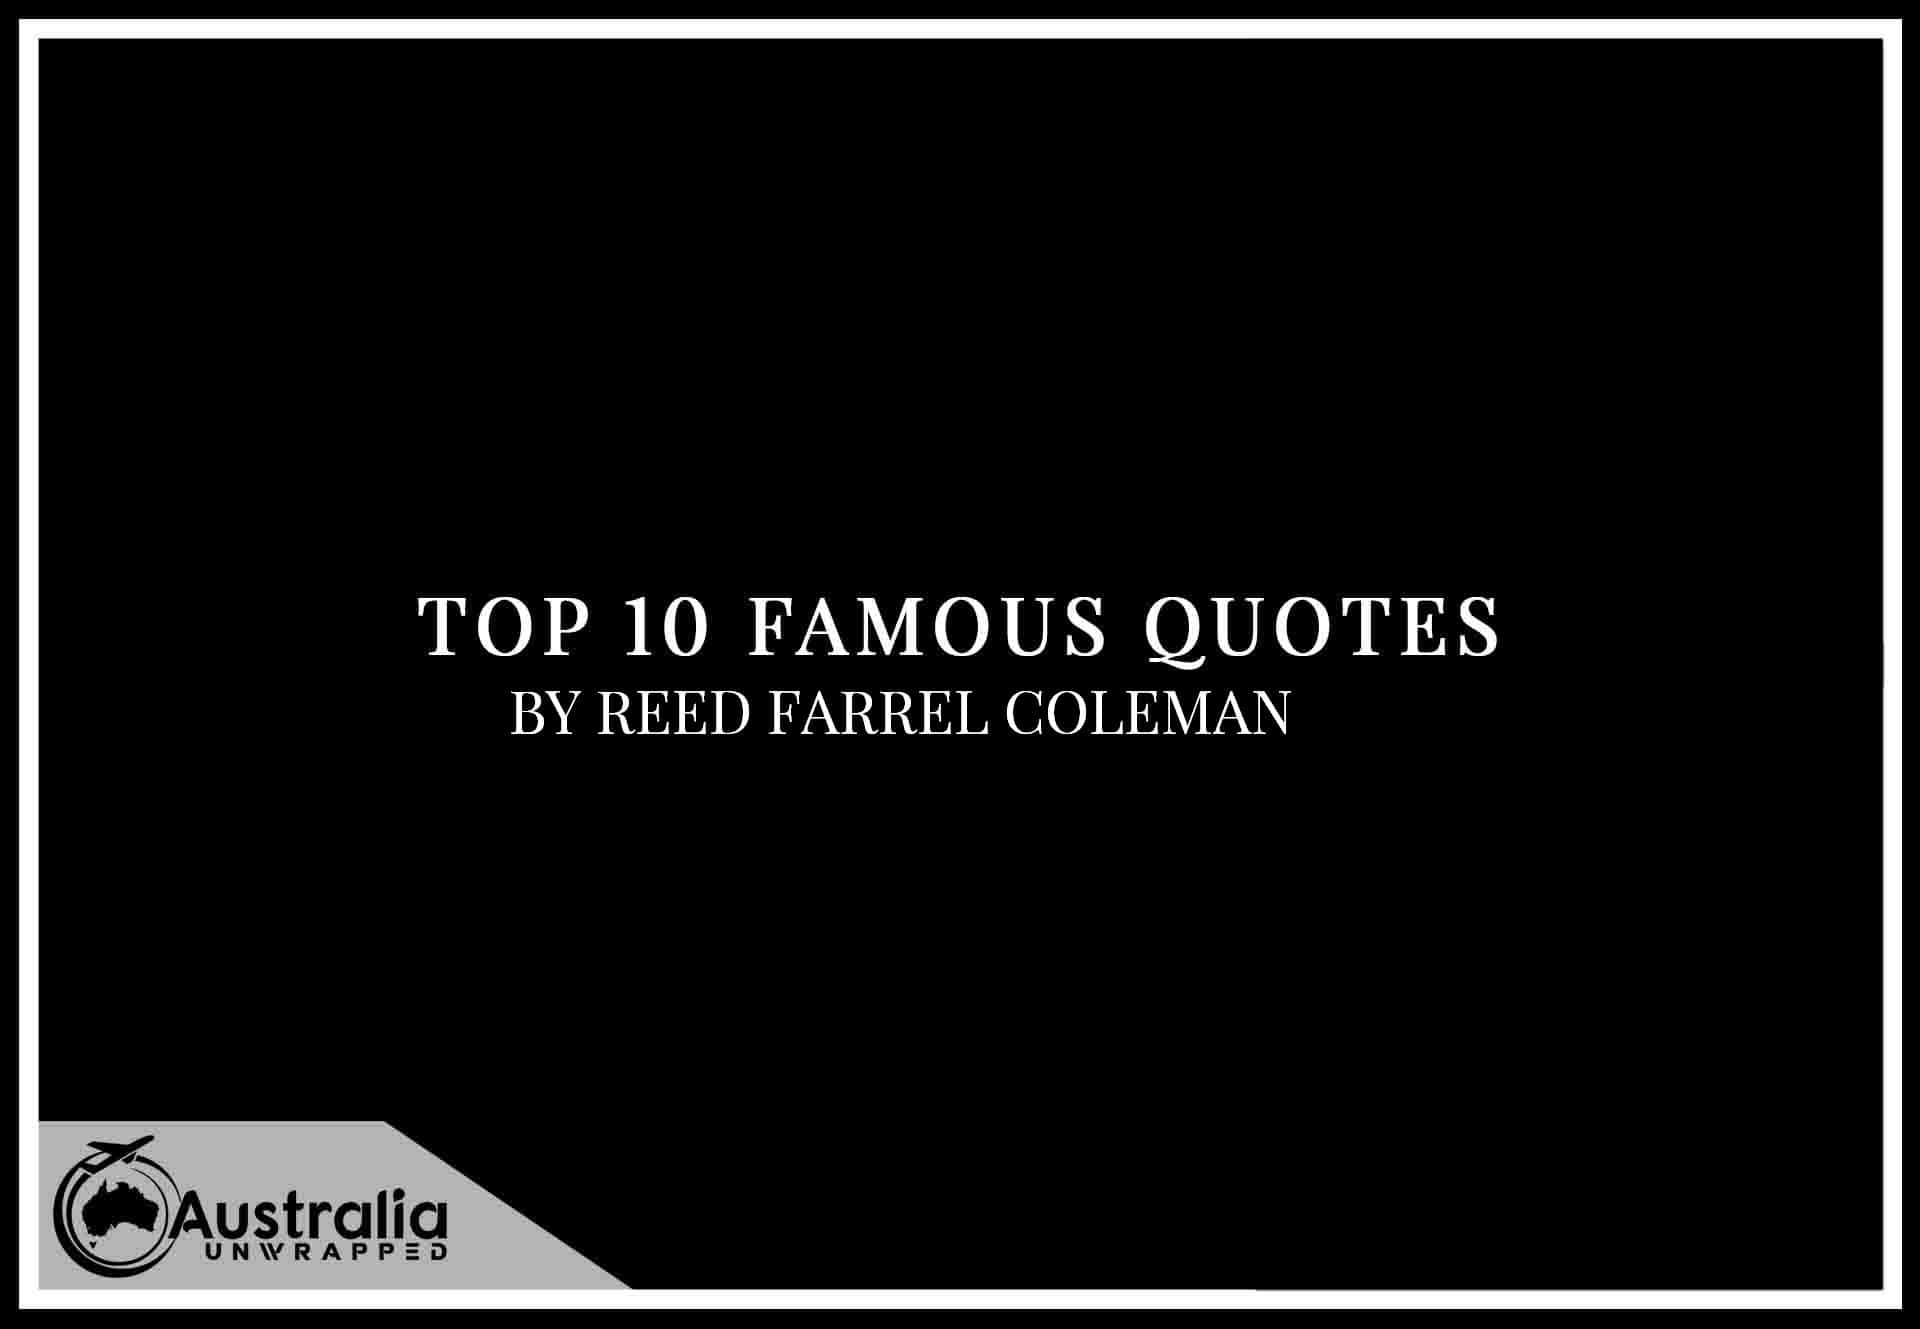 Reed Farrel Coleman's Top 10 Popular and Famous Quotes